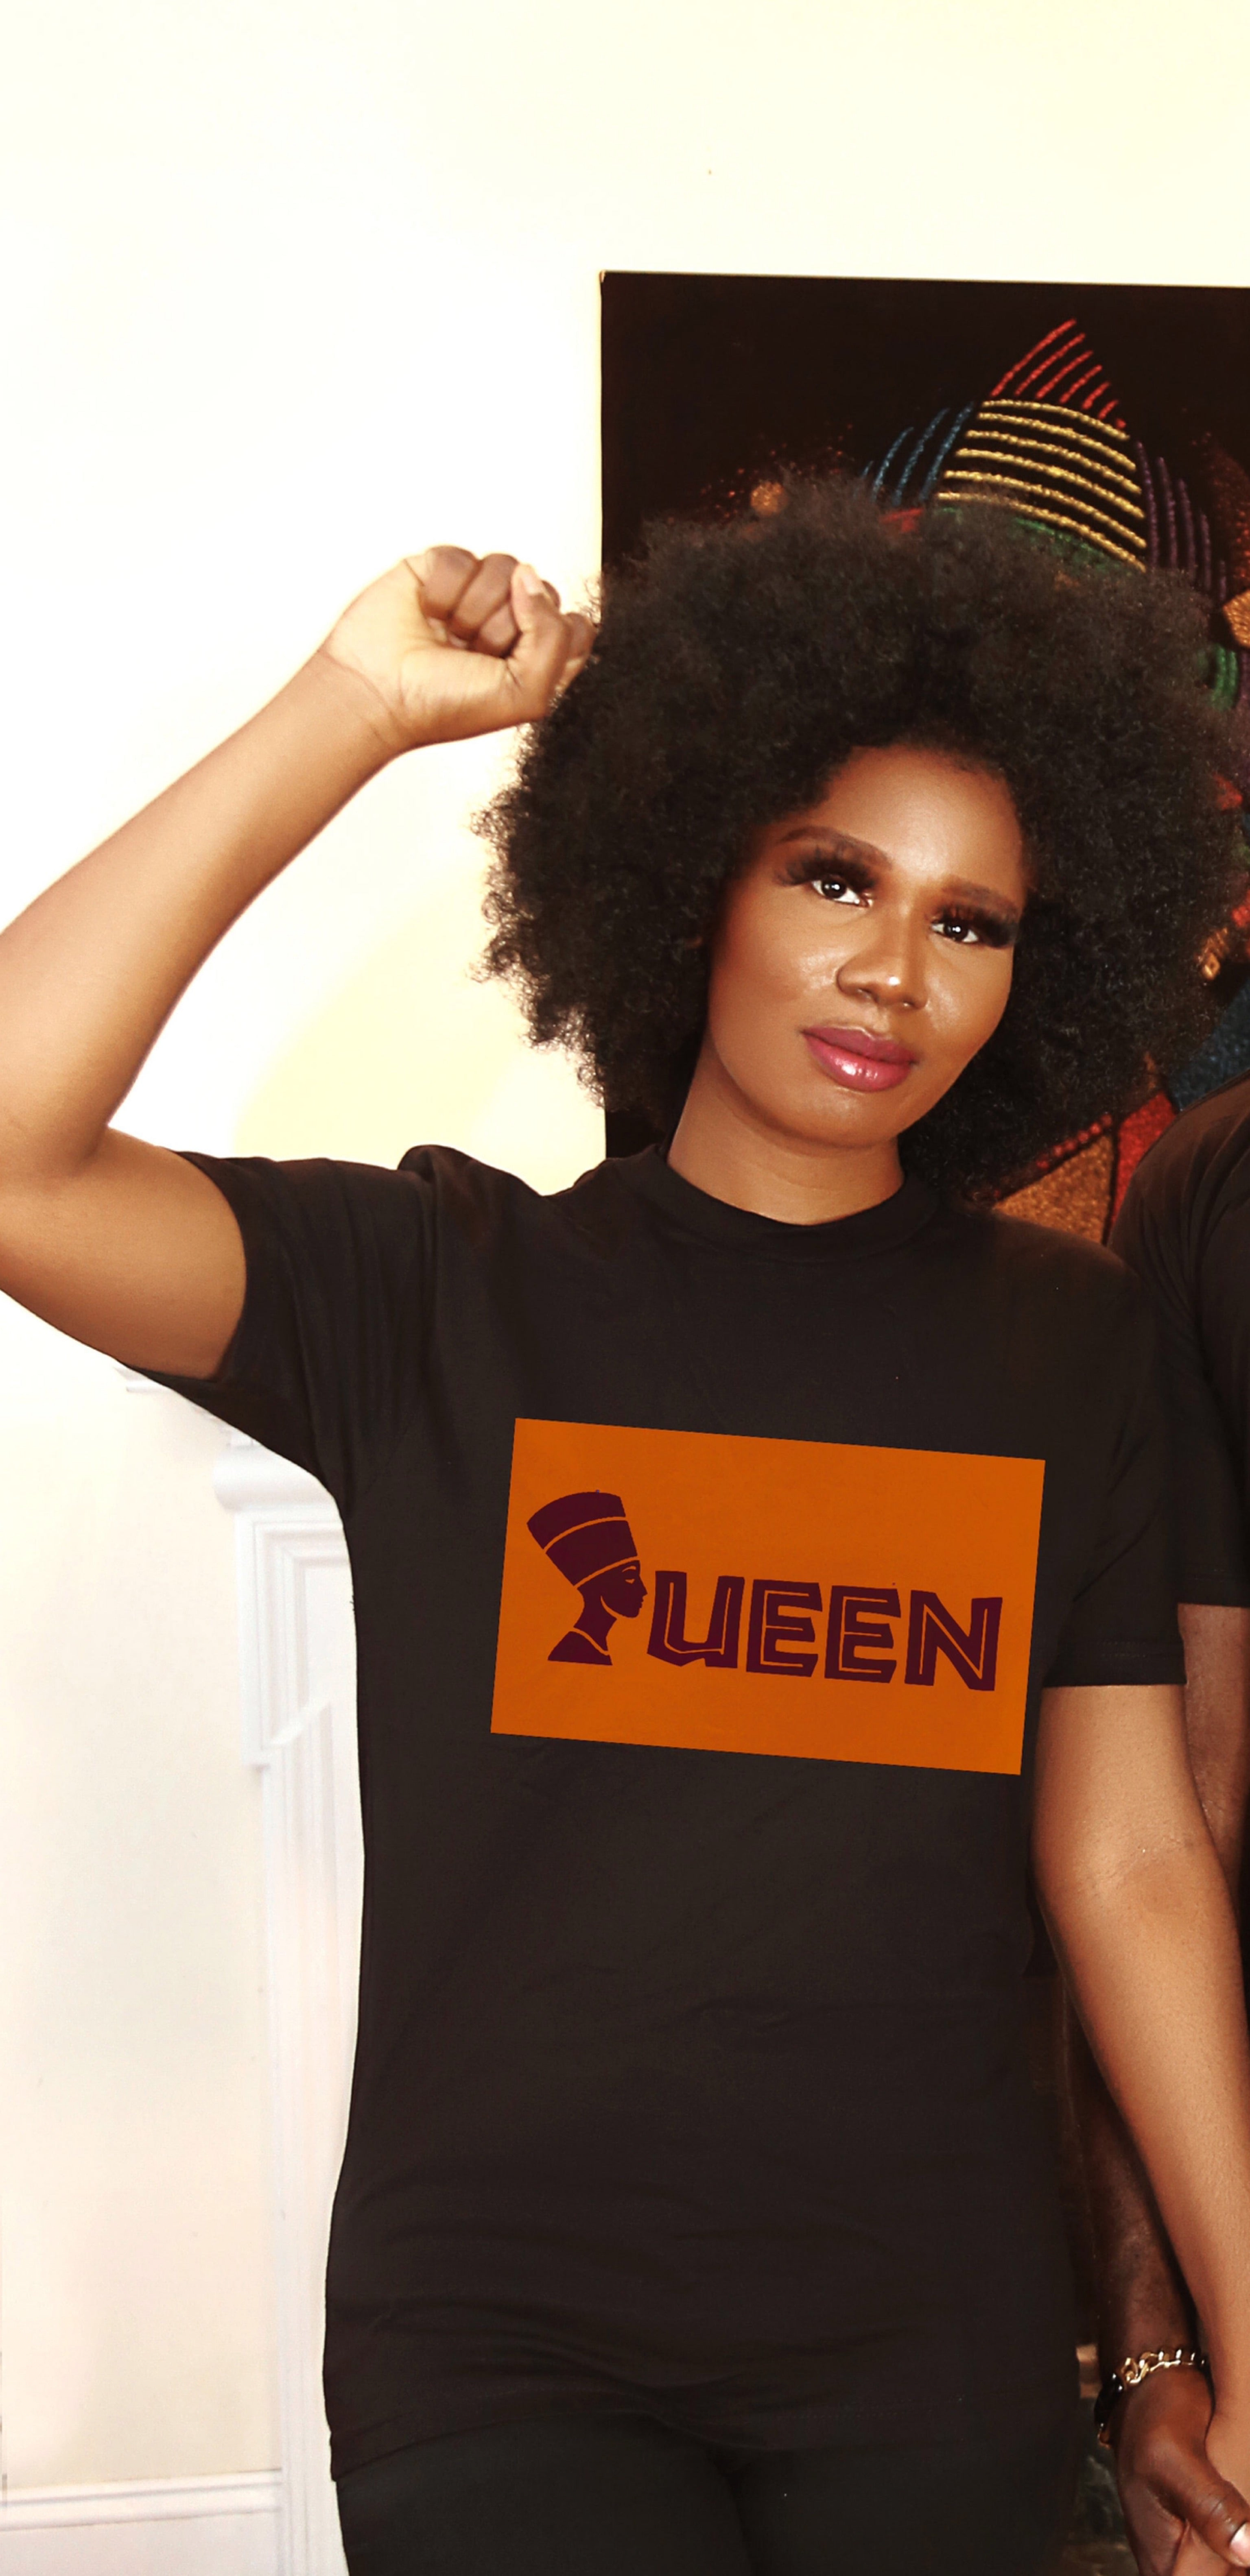 Queen tshirt (black)